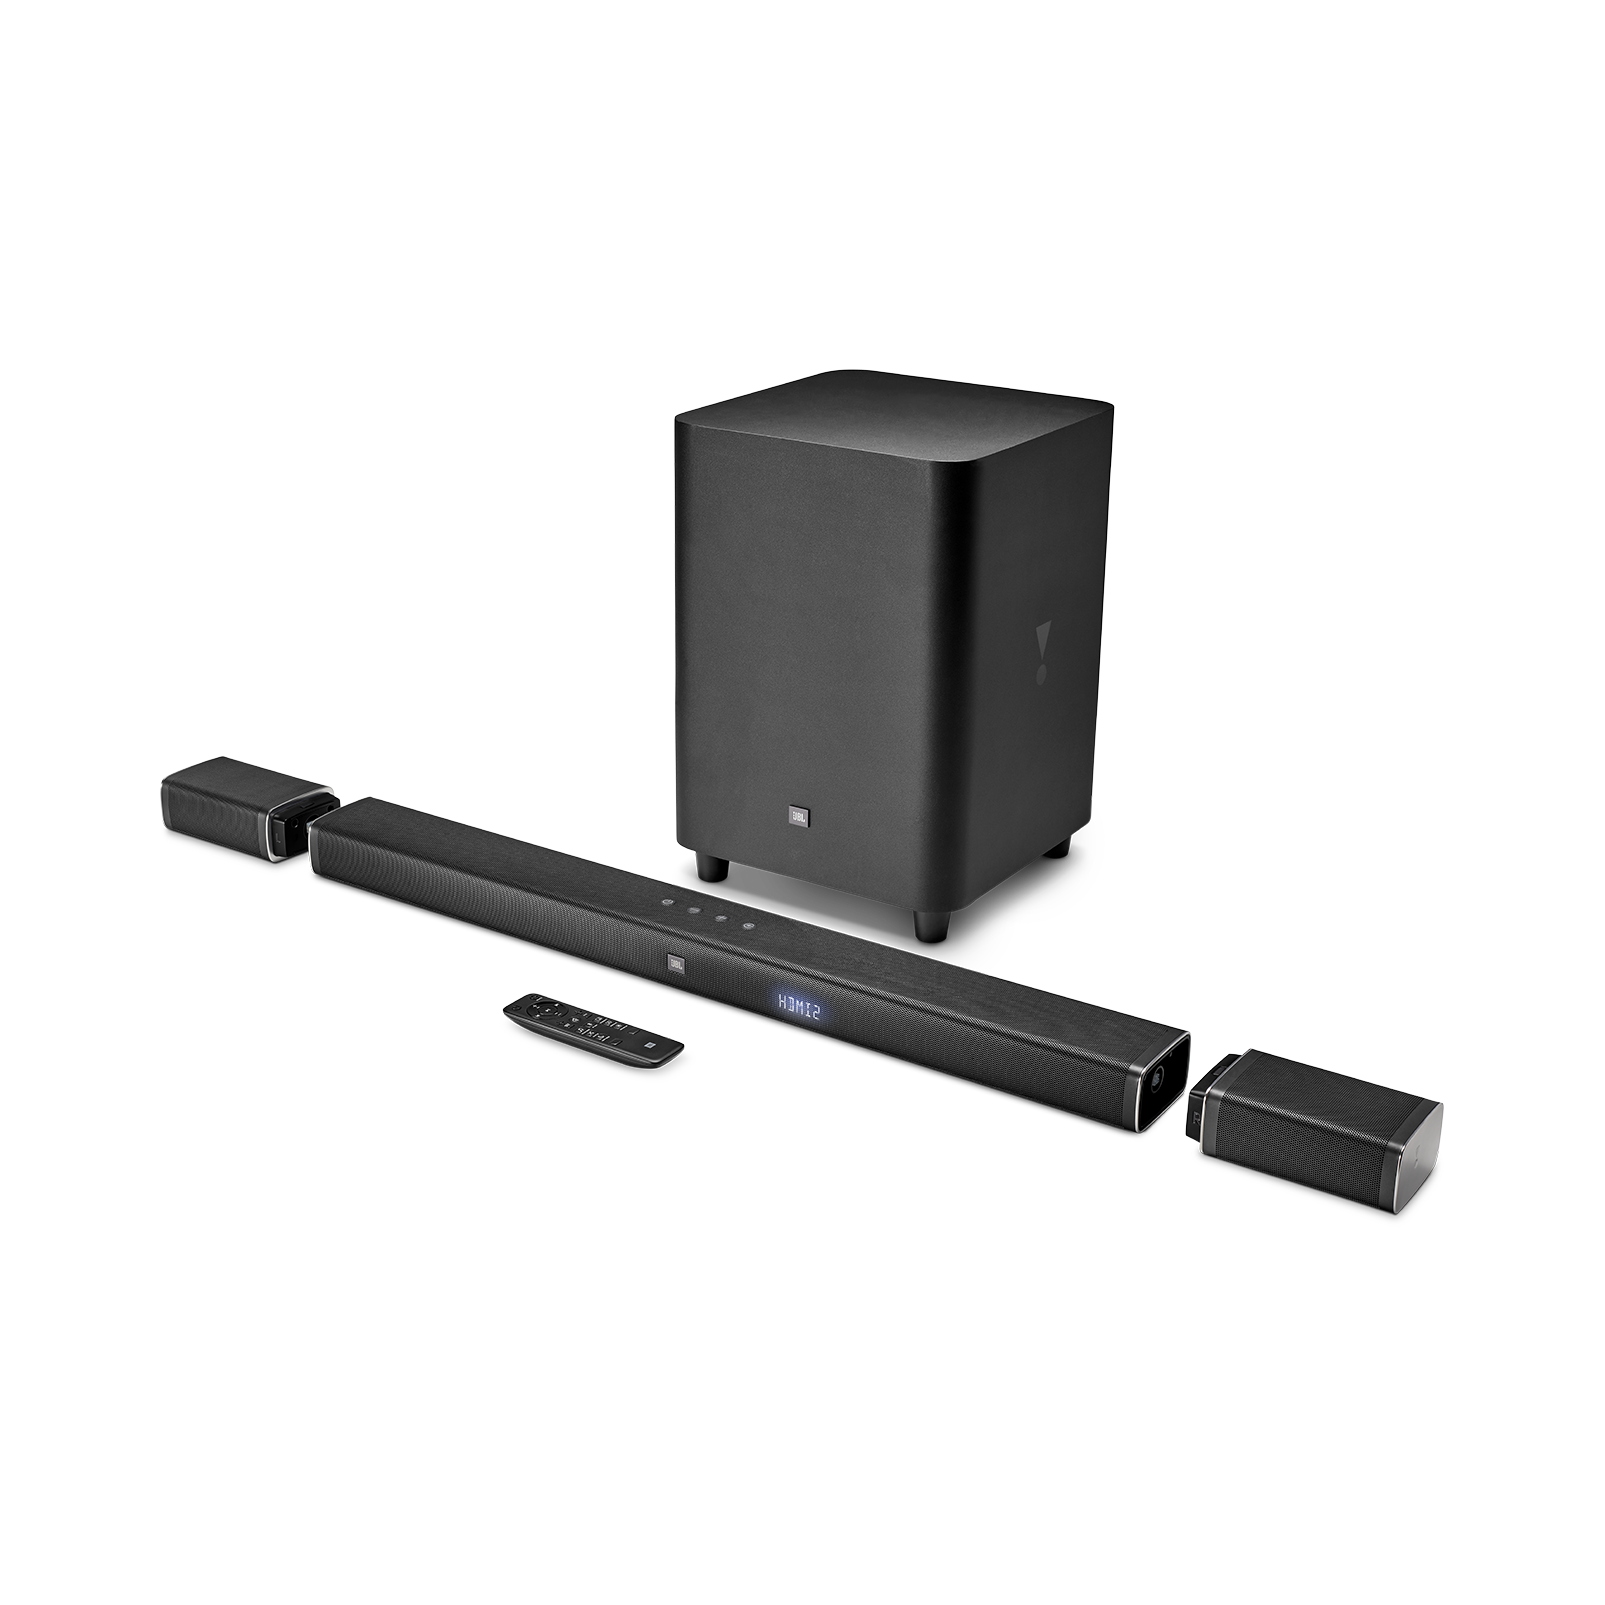 JBL Bar 5.1 - Black - 5.1-Channel 4K Ultra HD Soundbar with True Wireless Surround Speakers - Hero